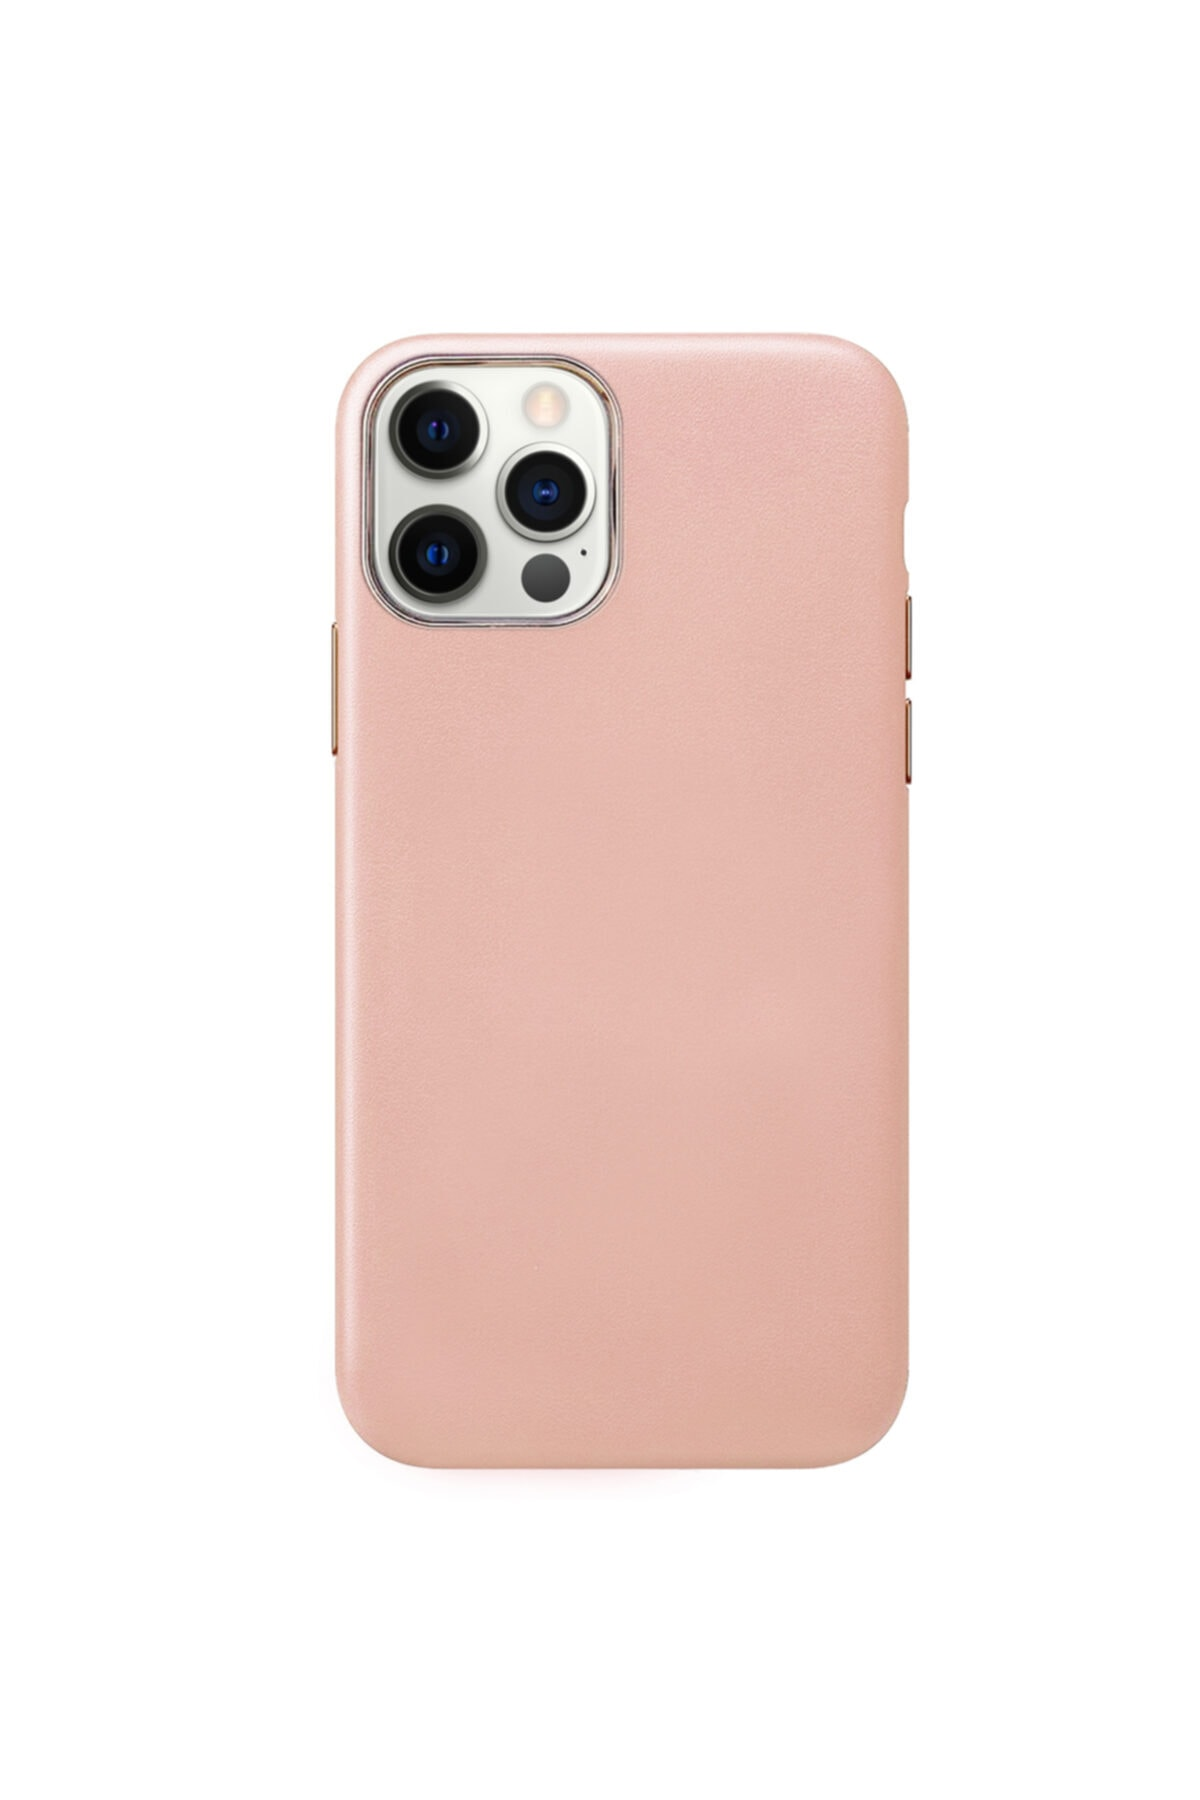 Microsonic Apple Iphone 12 Pro Max Kılıf Luxury Leather Rose Gold 2